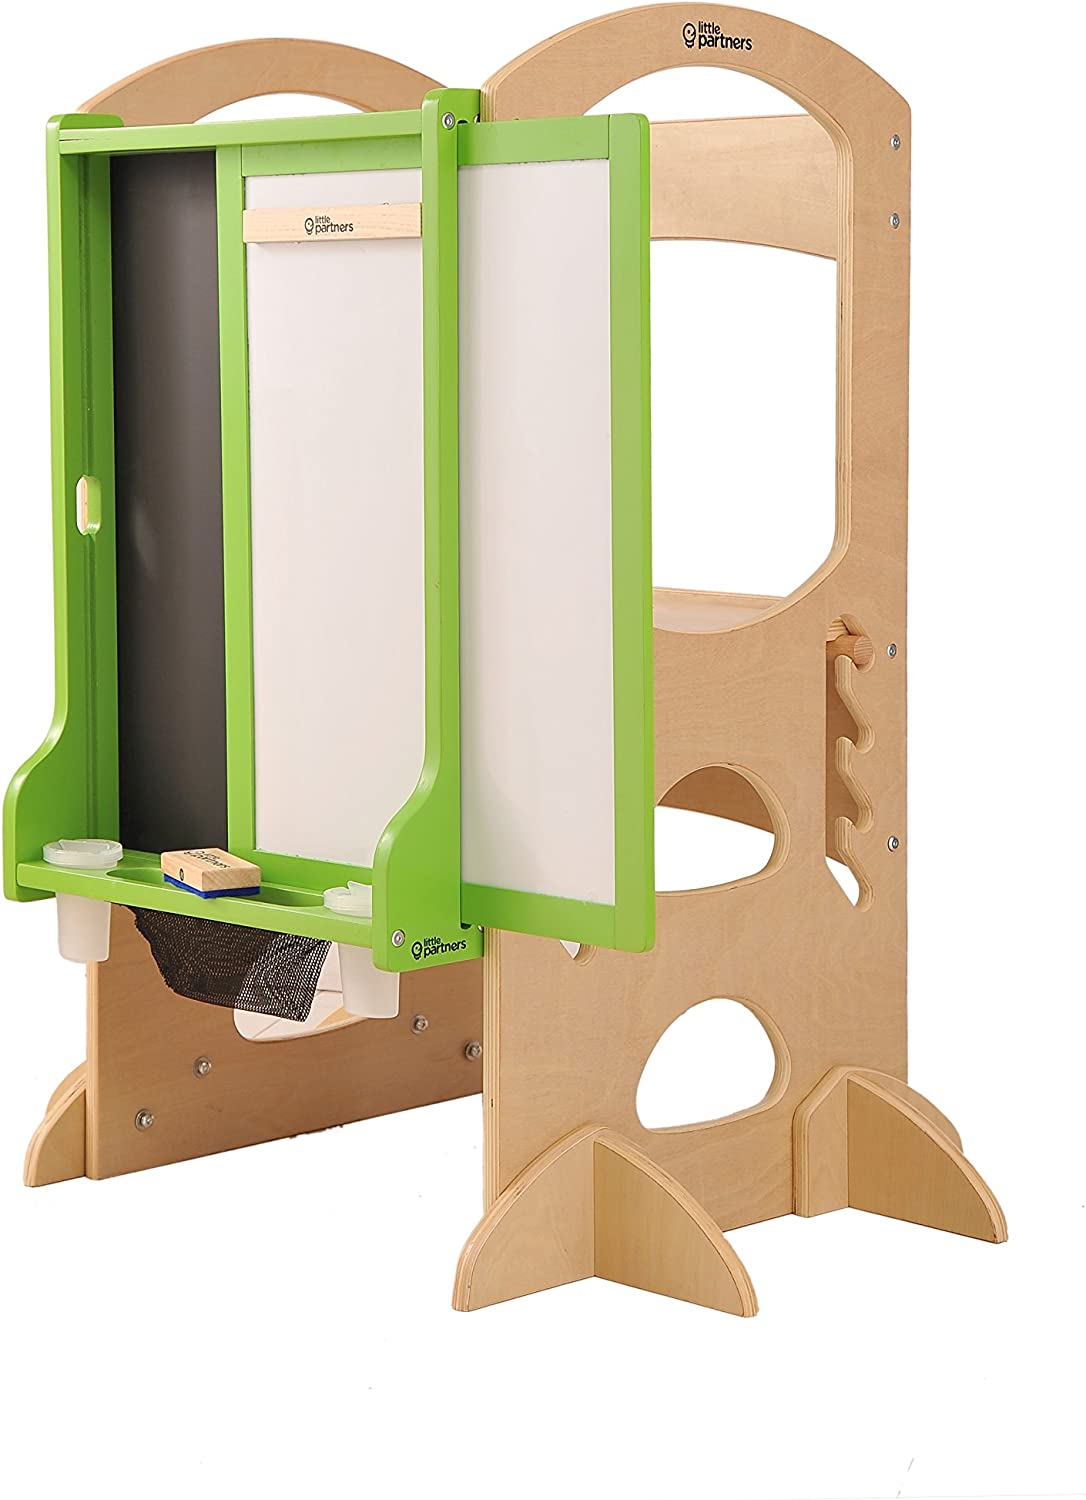 Add-on for the Original Learning Tower Little Partners Learn N Share Easel Green